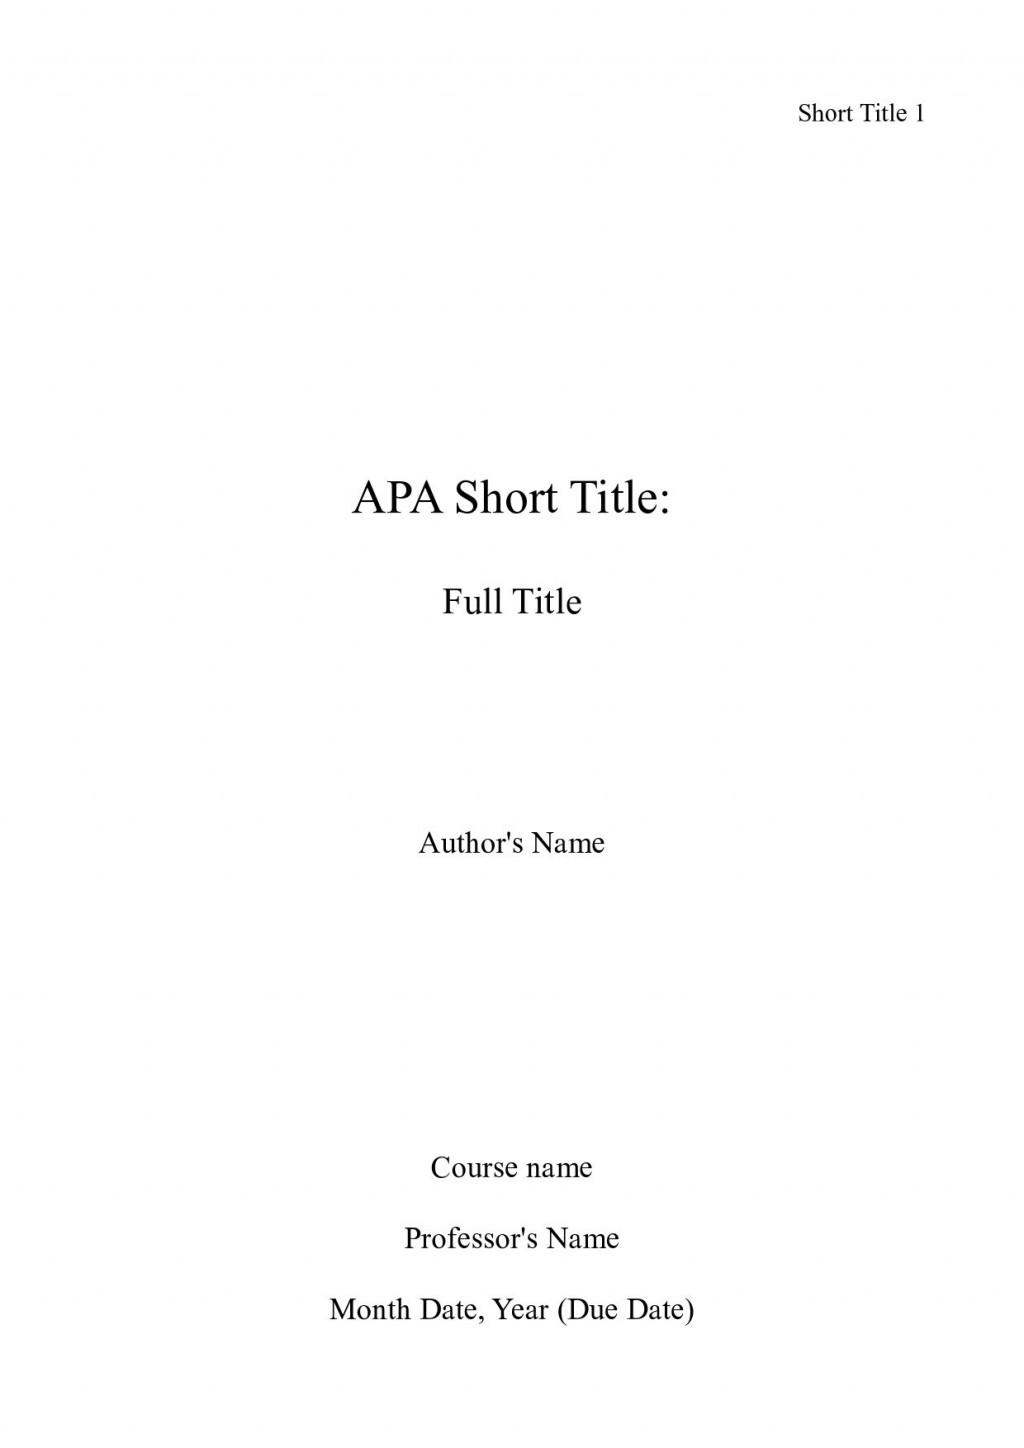 002 Research Paper Cover Page Template For Apa Rare Sample How To Do A Format Large